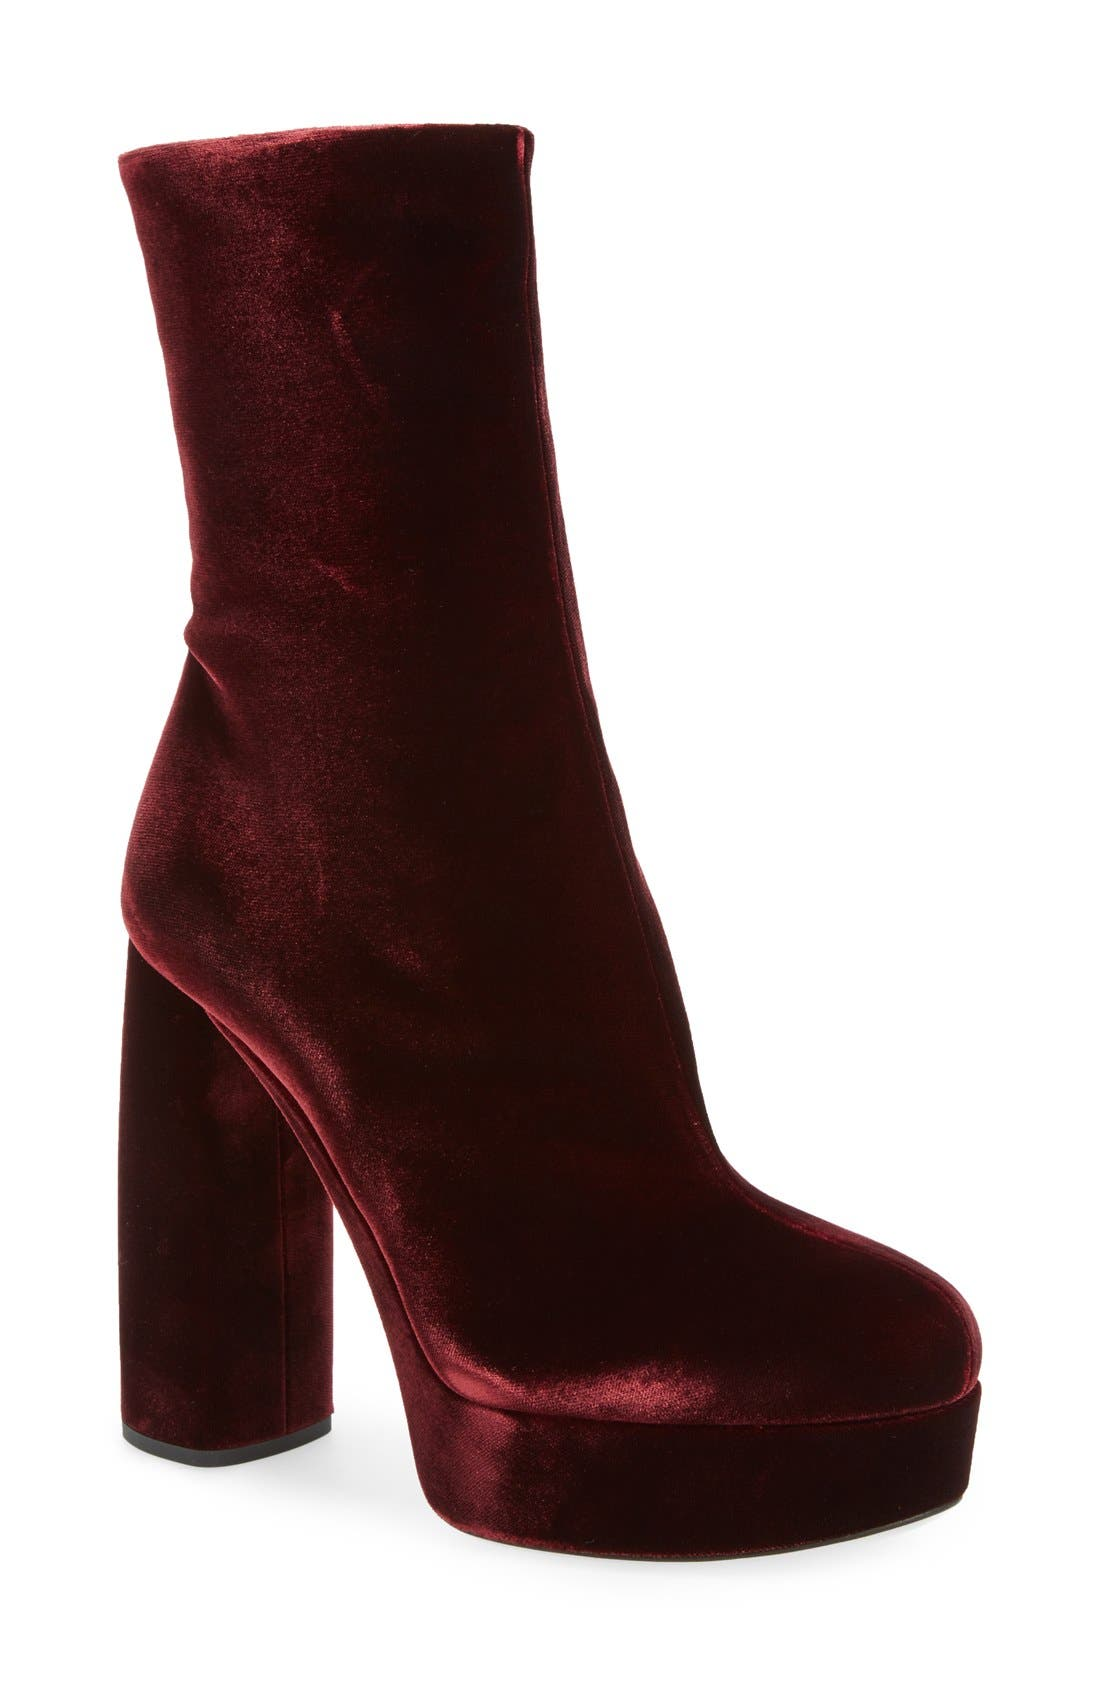 Alternate Image 1 Selected - Miu Miu Platform Block Heel Boot (Women)